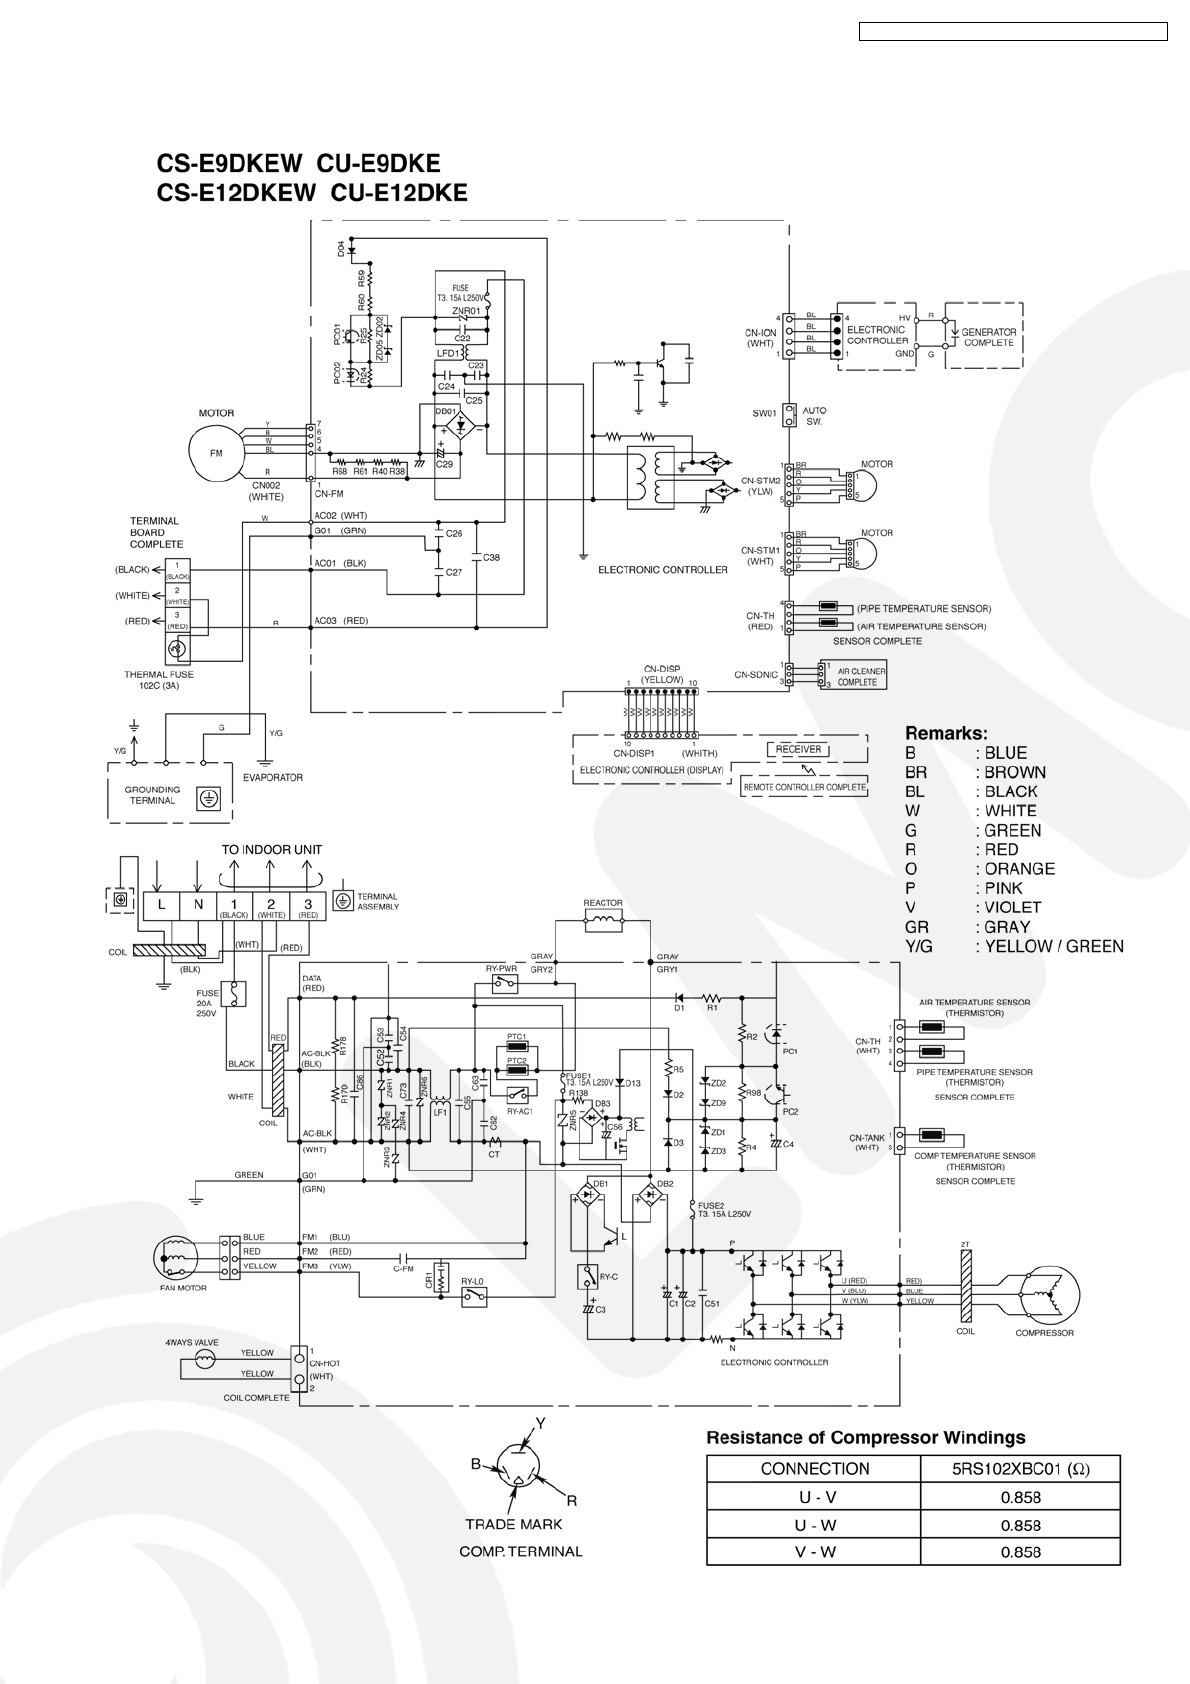 5bc1cf0d d725 4126 8b82 4c2e87dbfb59 bgf?resize=665%2C941 model hblg1200r room air conditioner wiring diagram model wiring  at bakdesigns.co